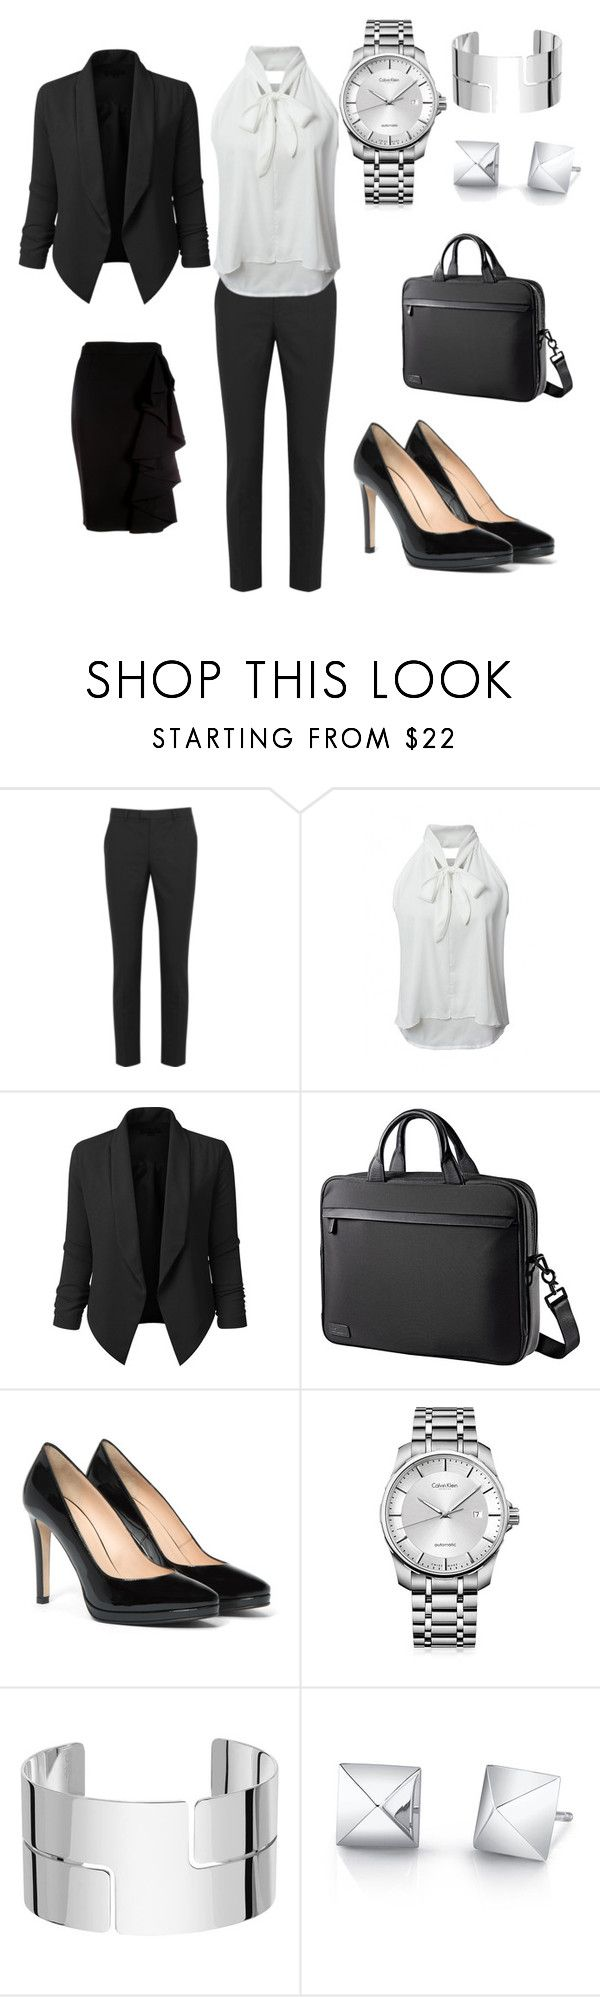 """Business"" by balog-viki on Polyvore featuring RED Valentino, WithChic, LE3NO, Aquatalia by Marvin K., Calvin Klein, Dinh Van and Moschino"